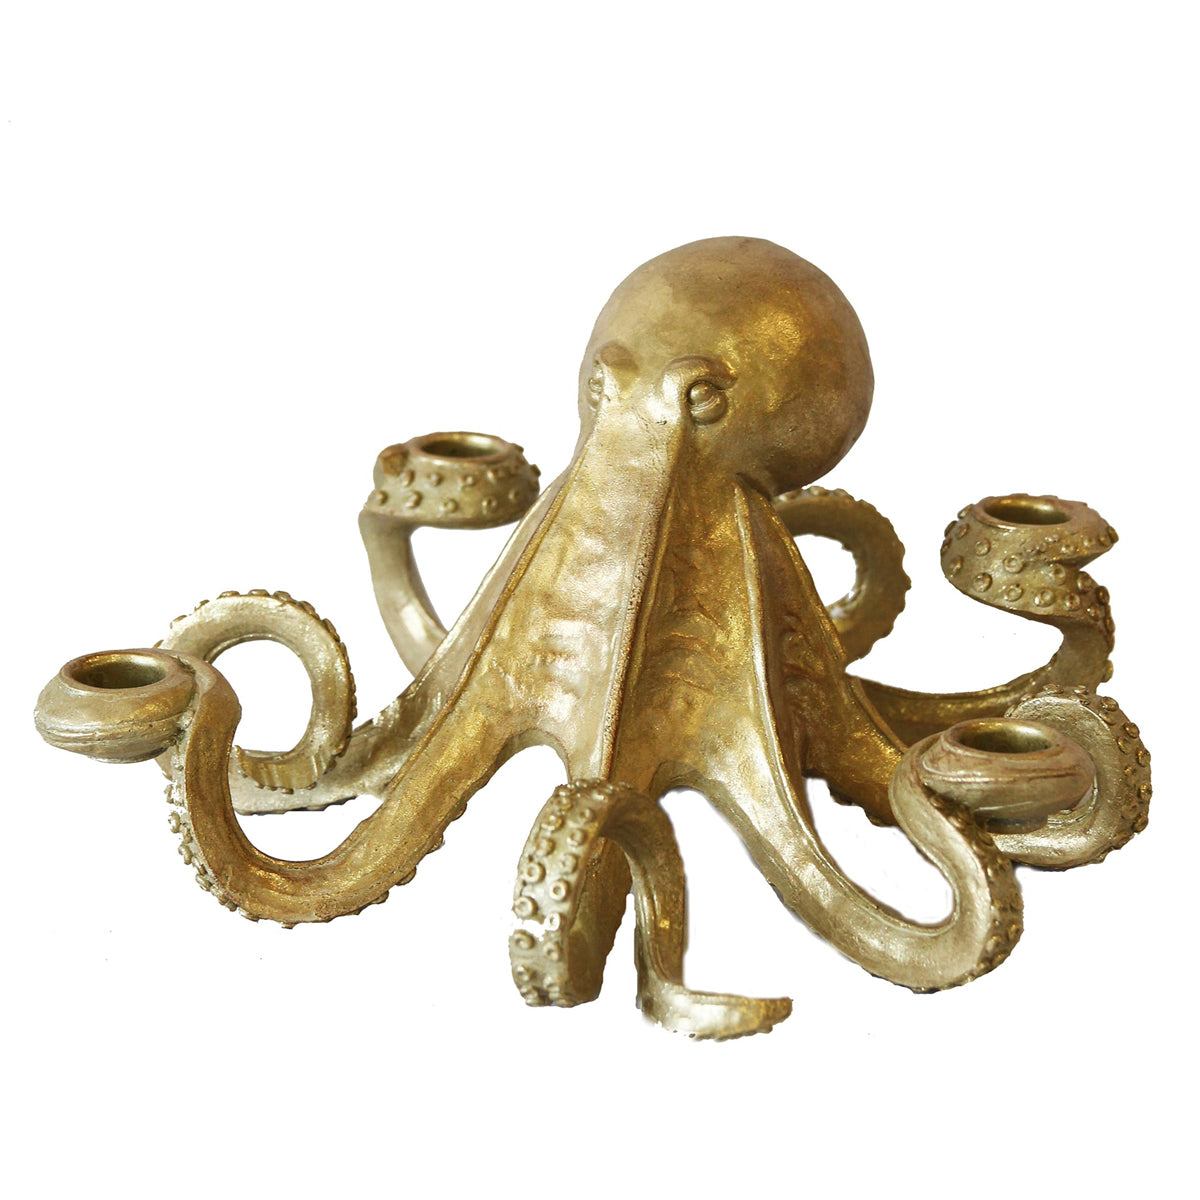 Octopus Candle Stick Holder